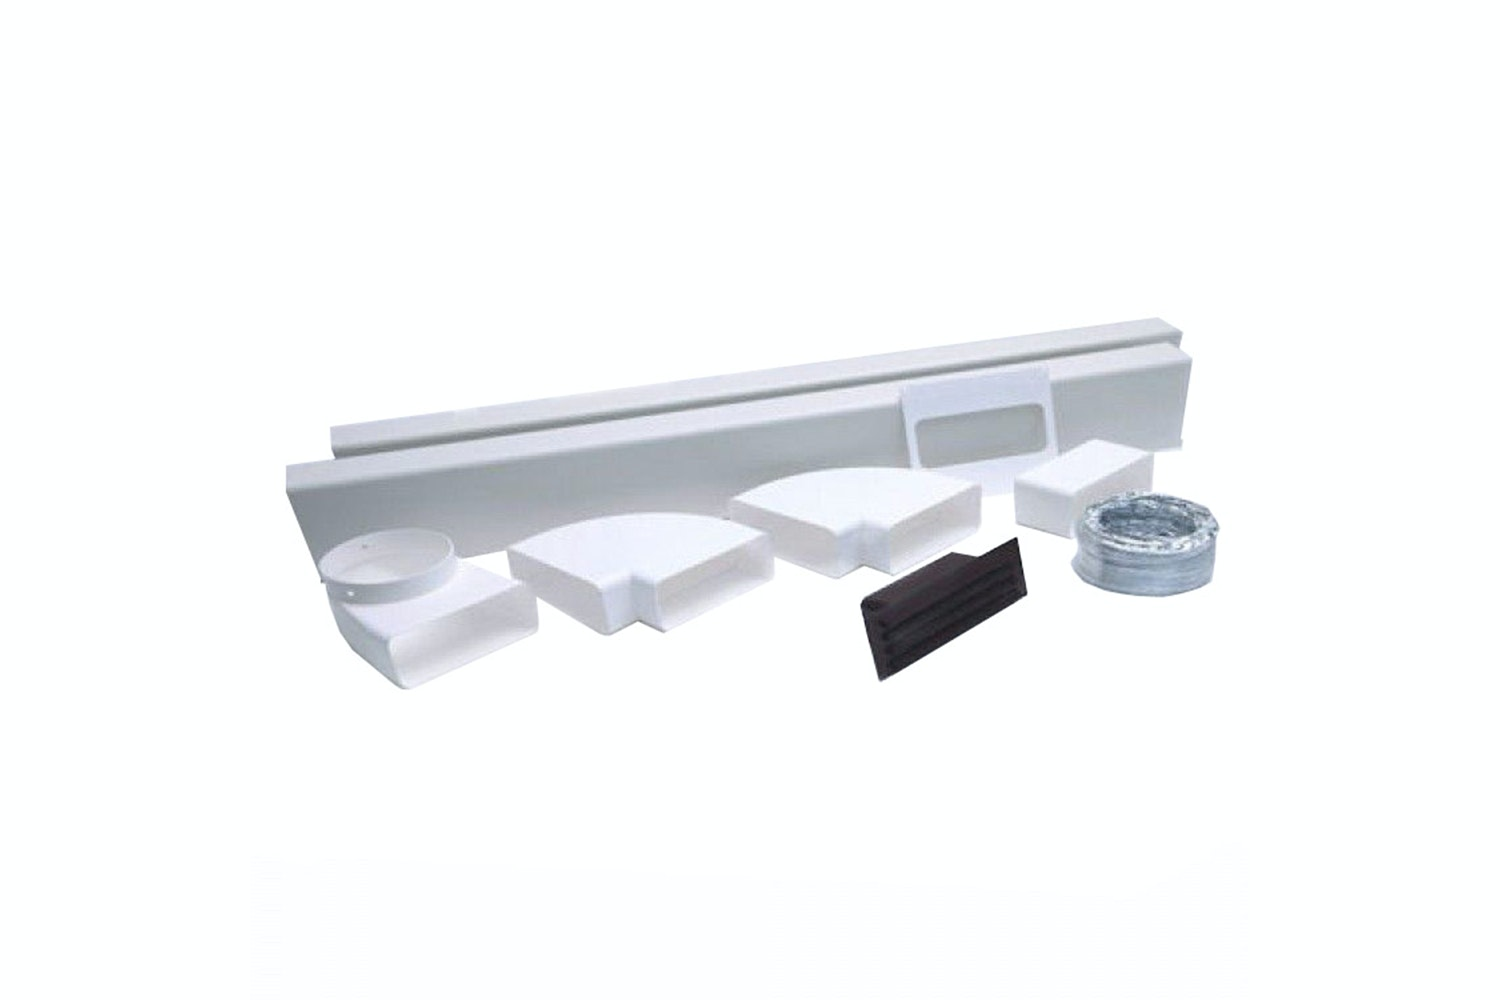 Luxair 3.5m Cooker Hood Ducting Kit | LA150-3.5M